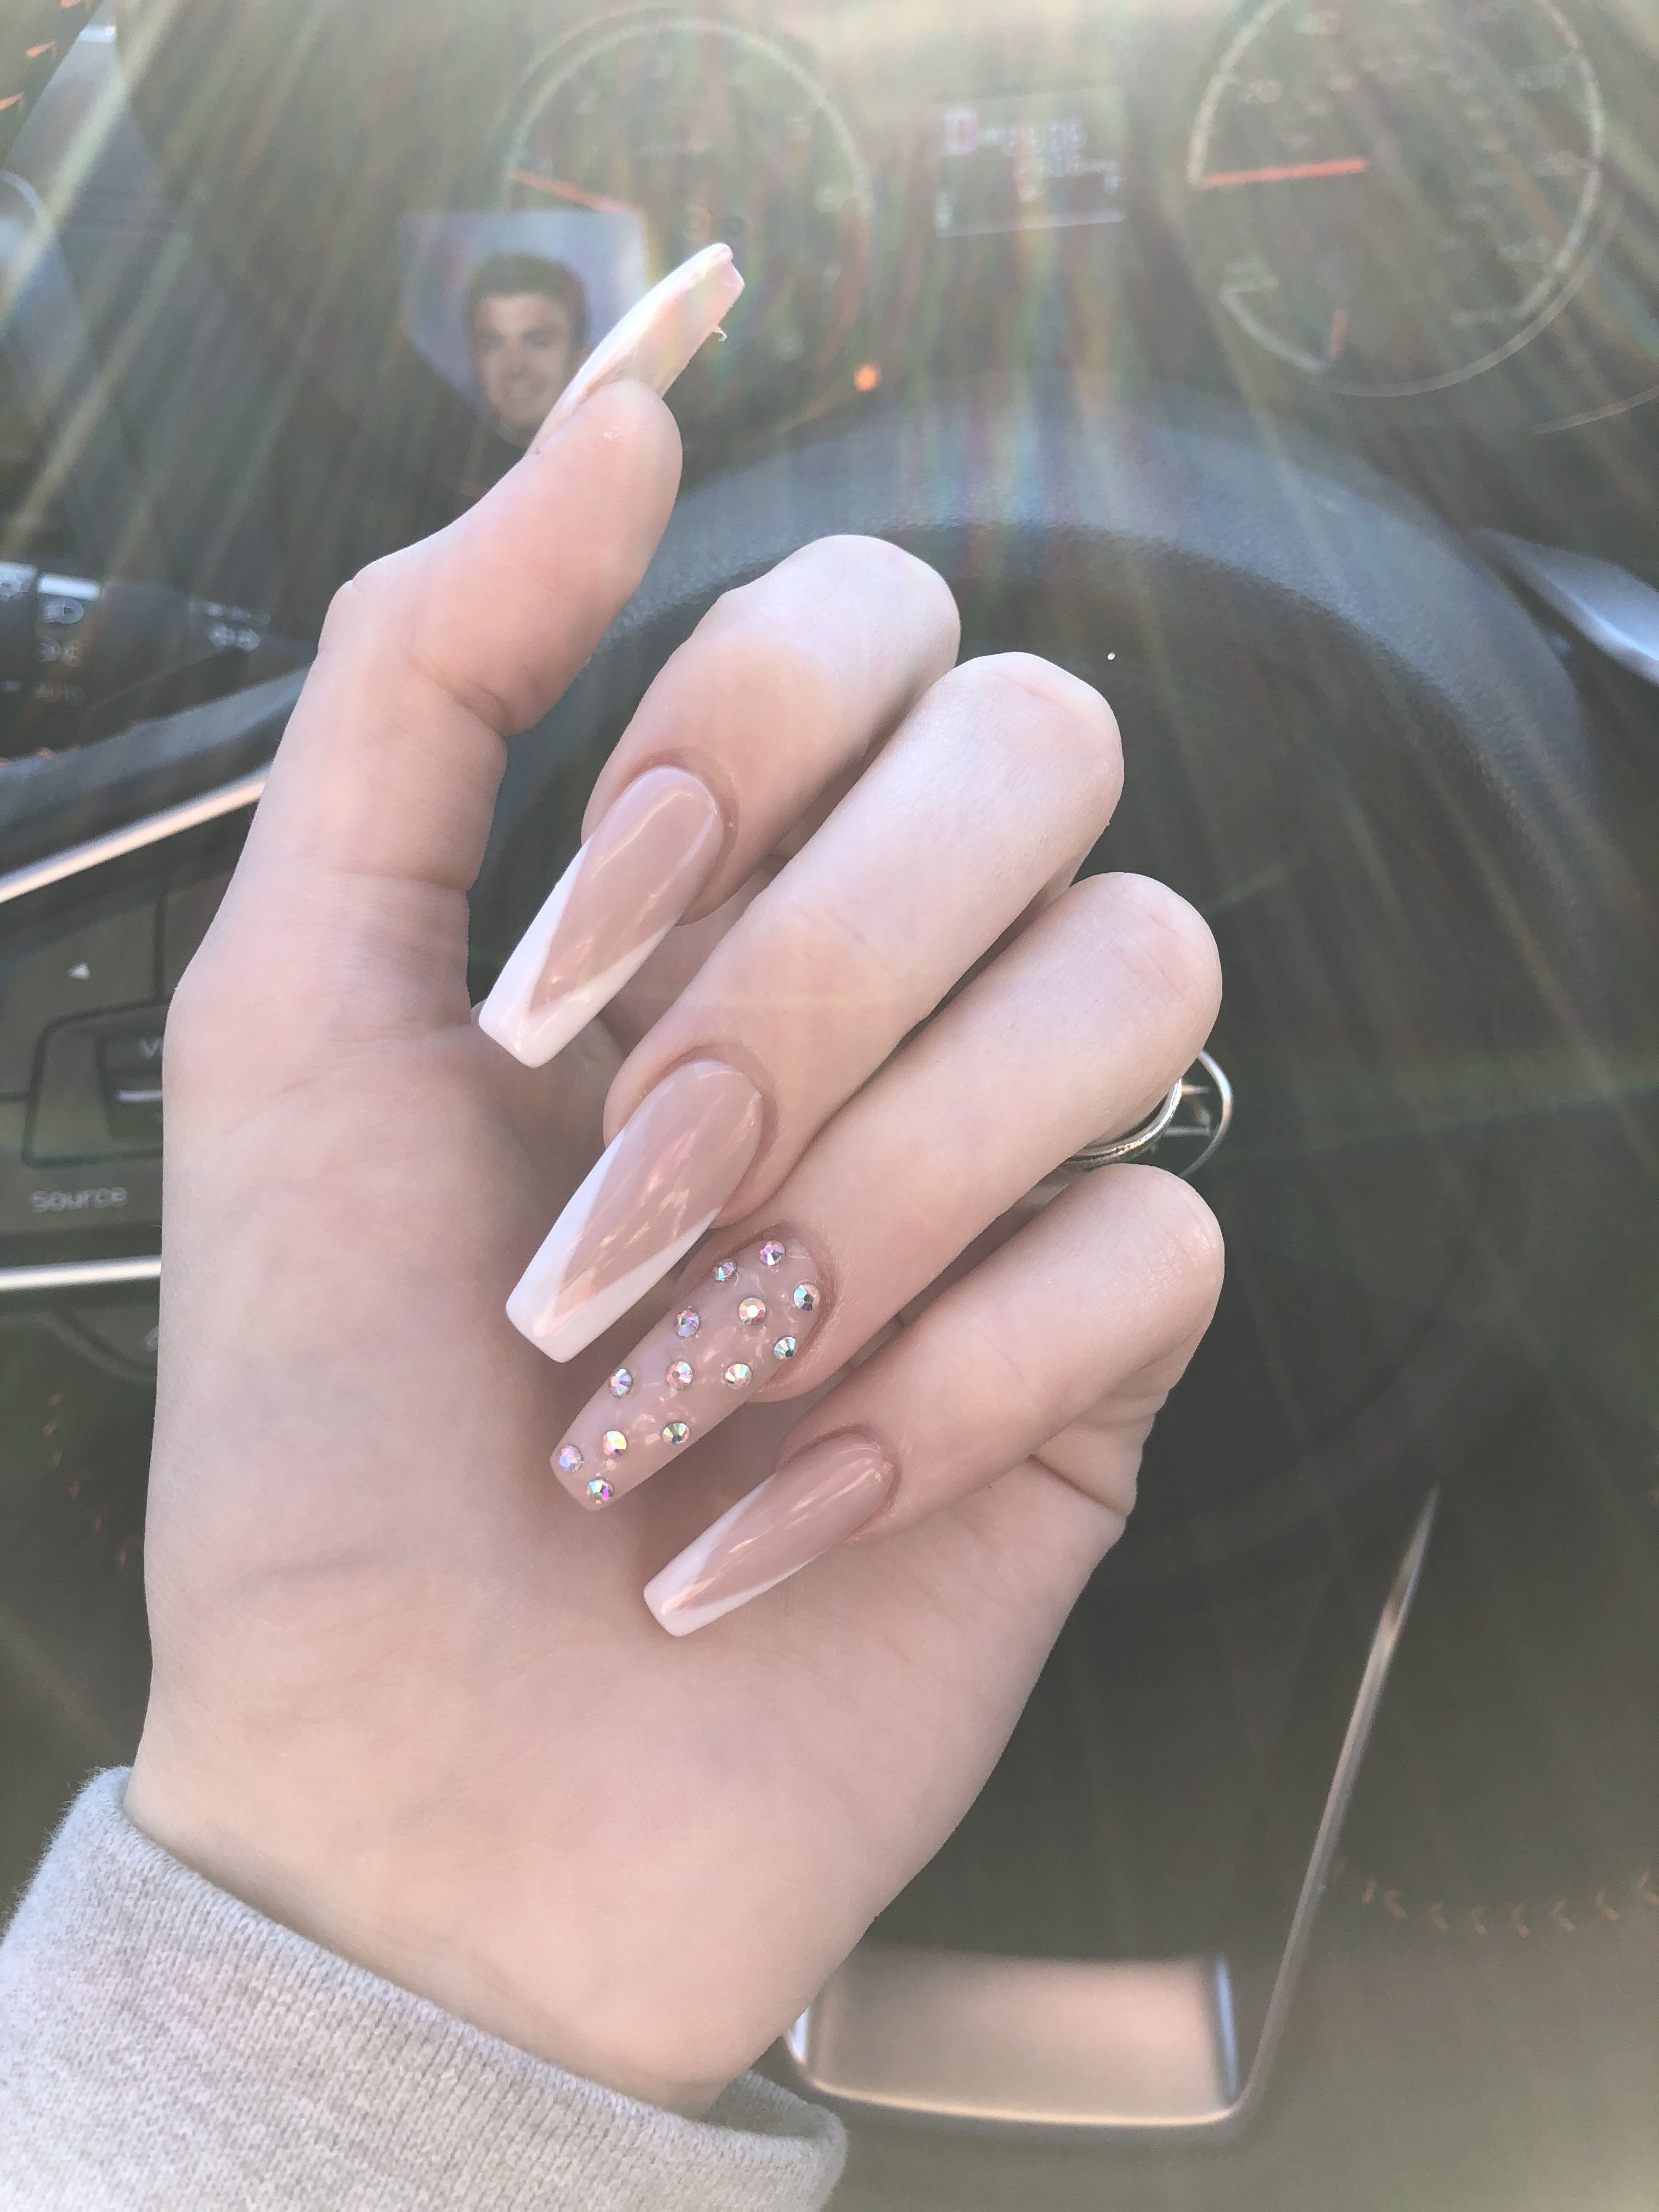 Acrylic Nails in 2020